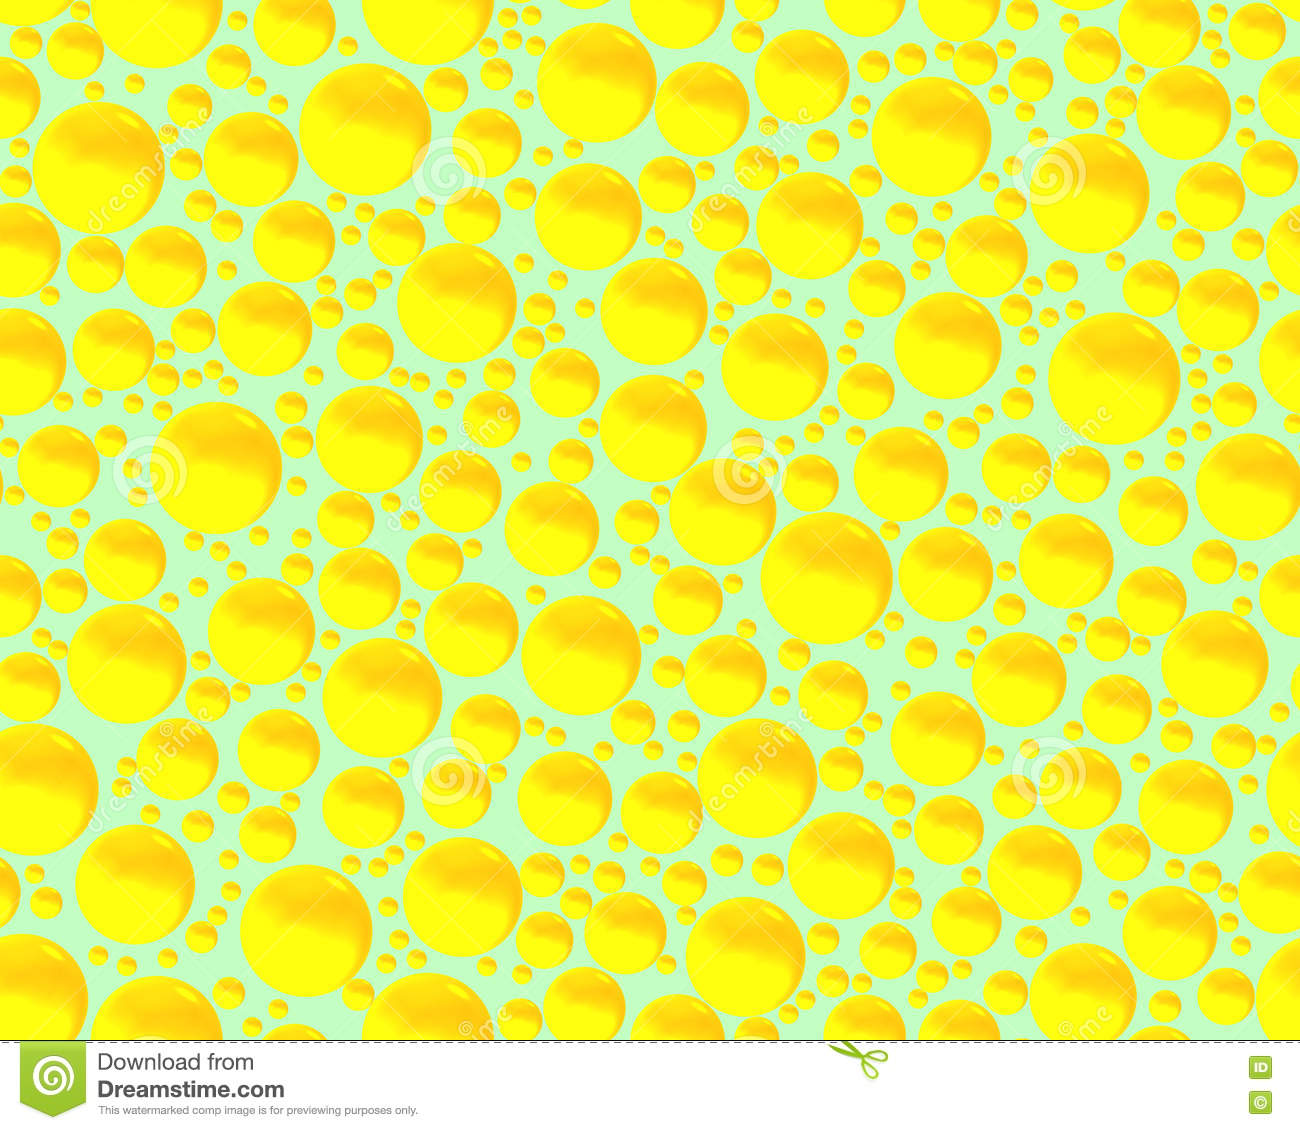 sparkling yellow bubbles and spheres on green background